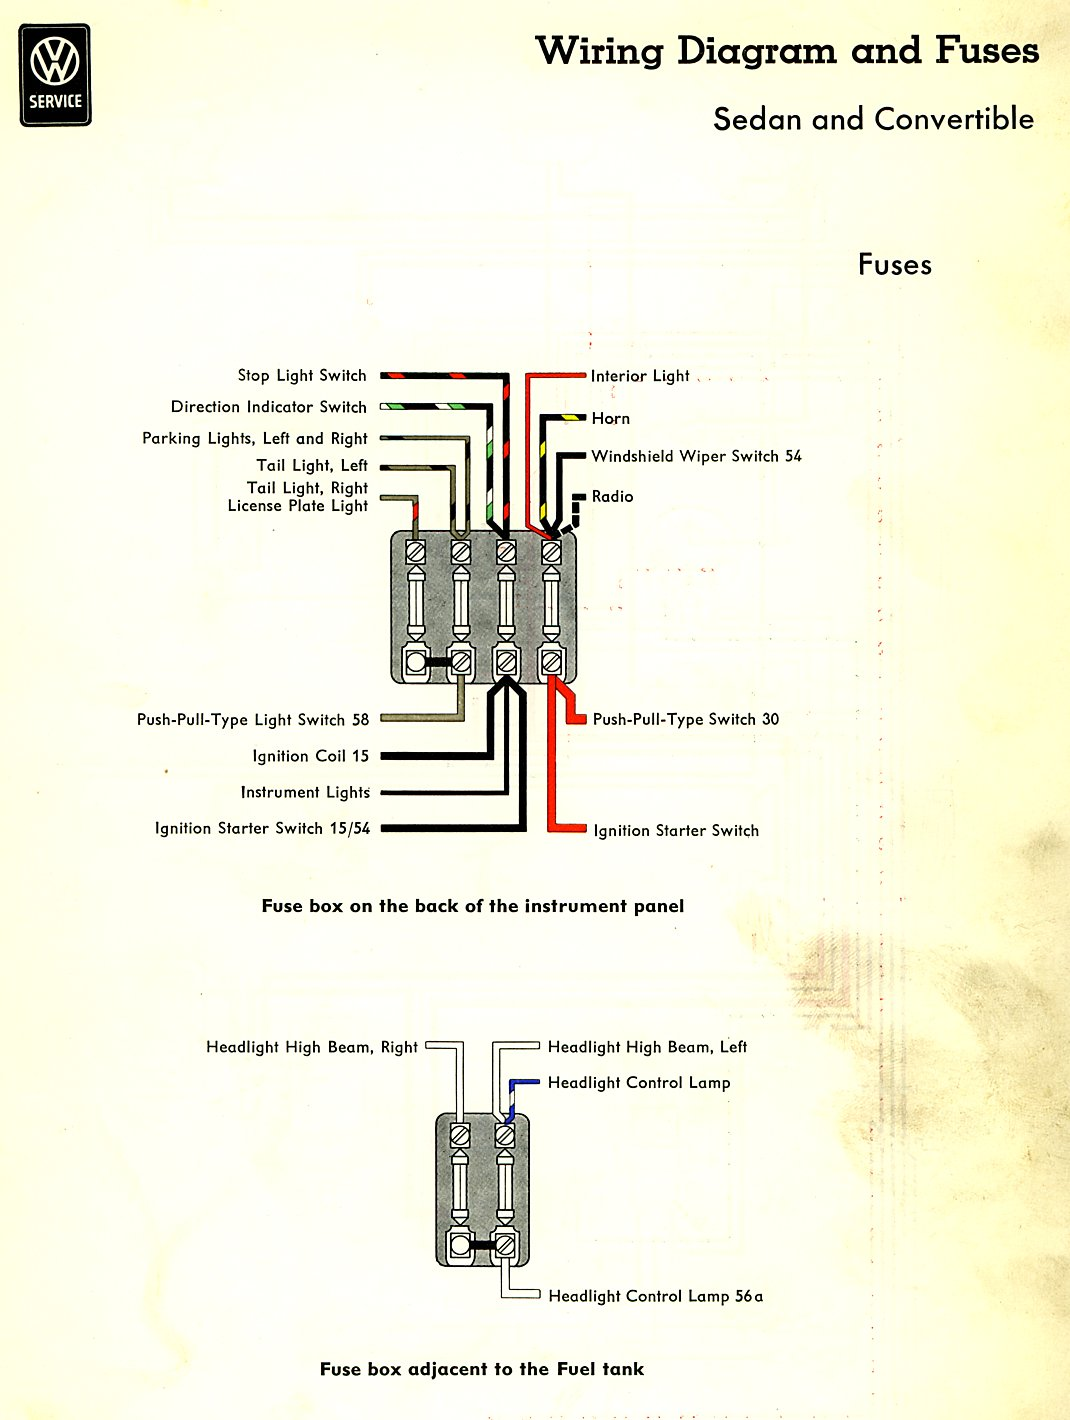 bug_58_fuses thesamba com type 1 wiring diagrams 1974 super beetle fuse diagram at readyjetset.co